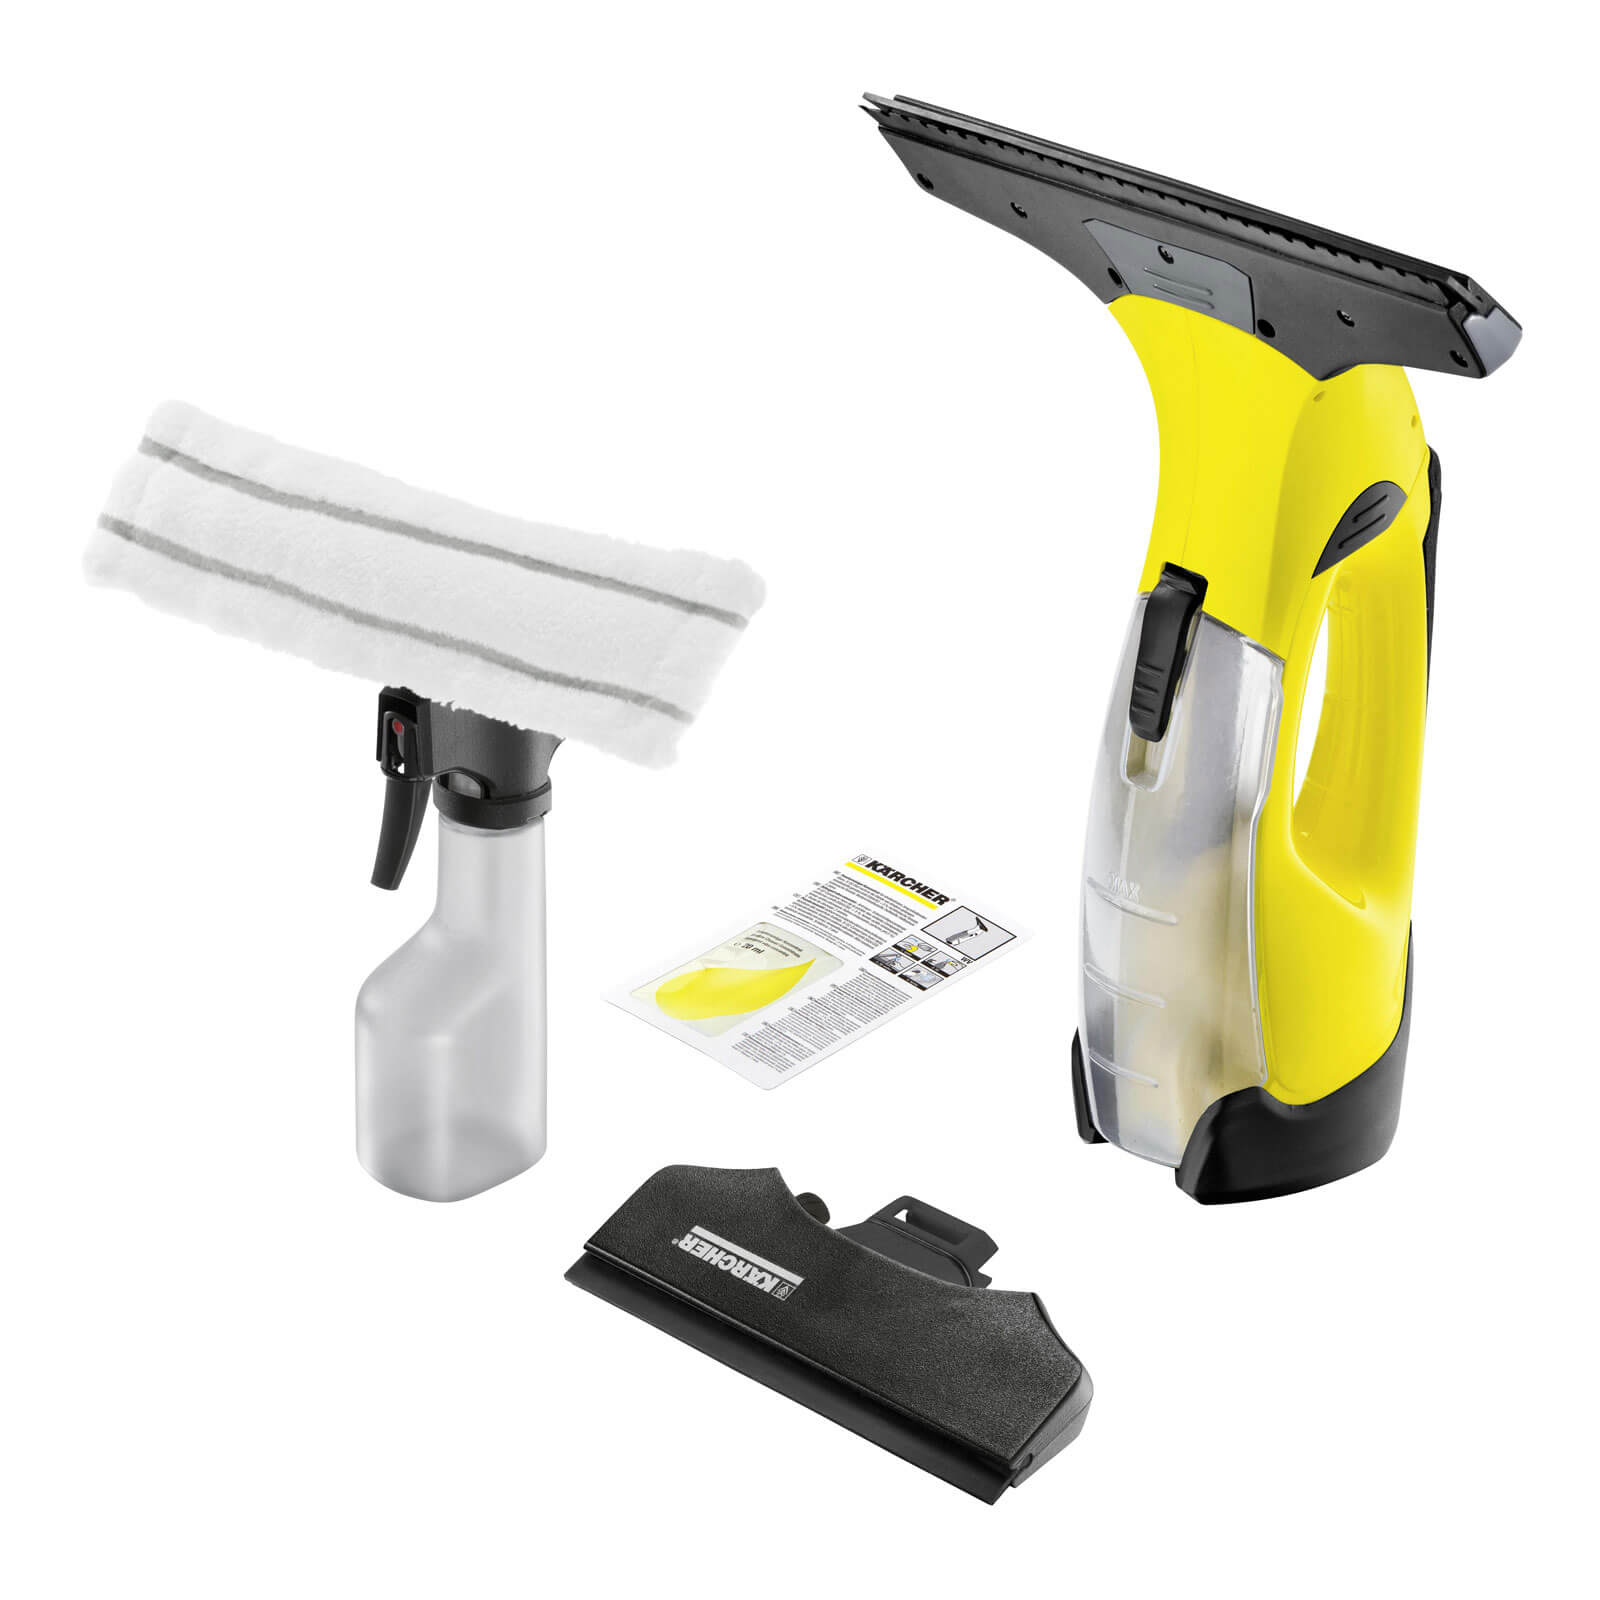 Karcher WV 5 Rechargeable Window Vac with 1 Li-ion Battery, Spray Bottle, Pad & Small Nozzle